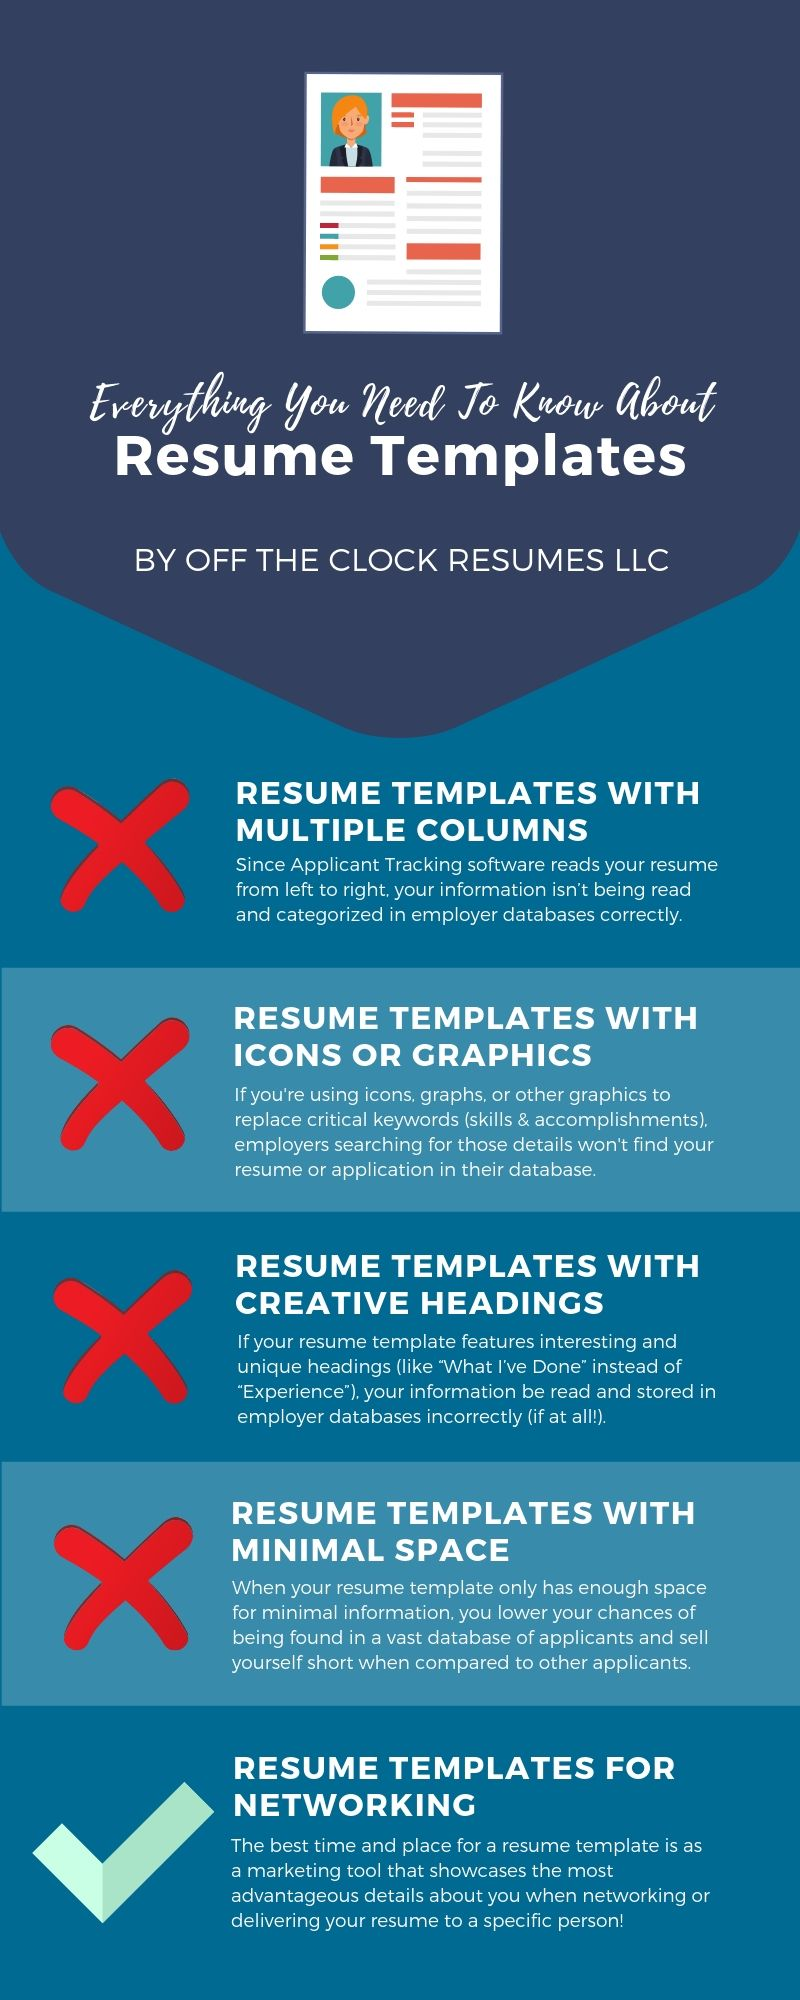 Everything You Need To Know About Resume Templates